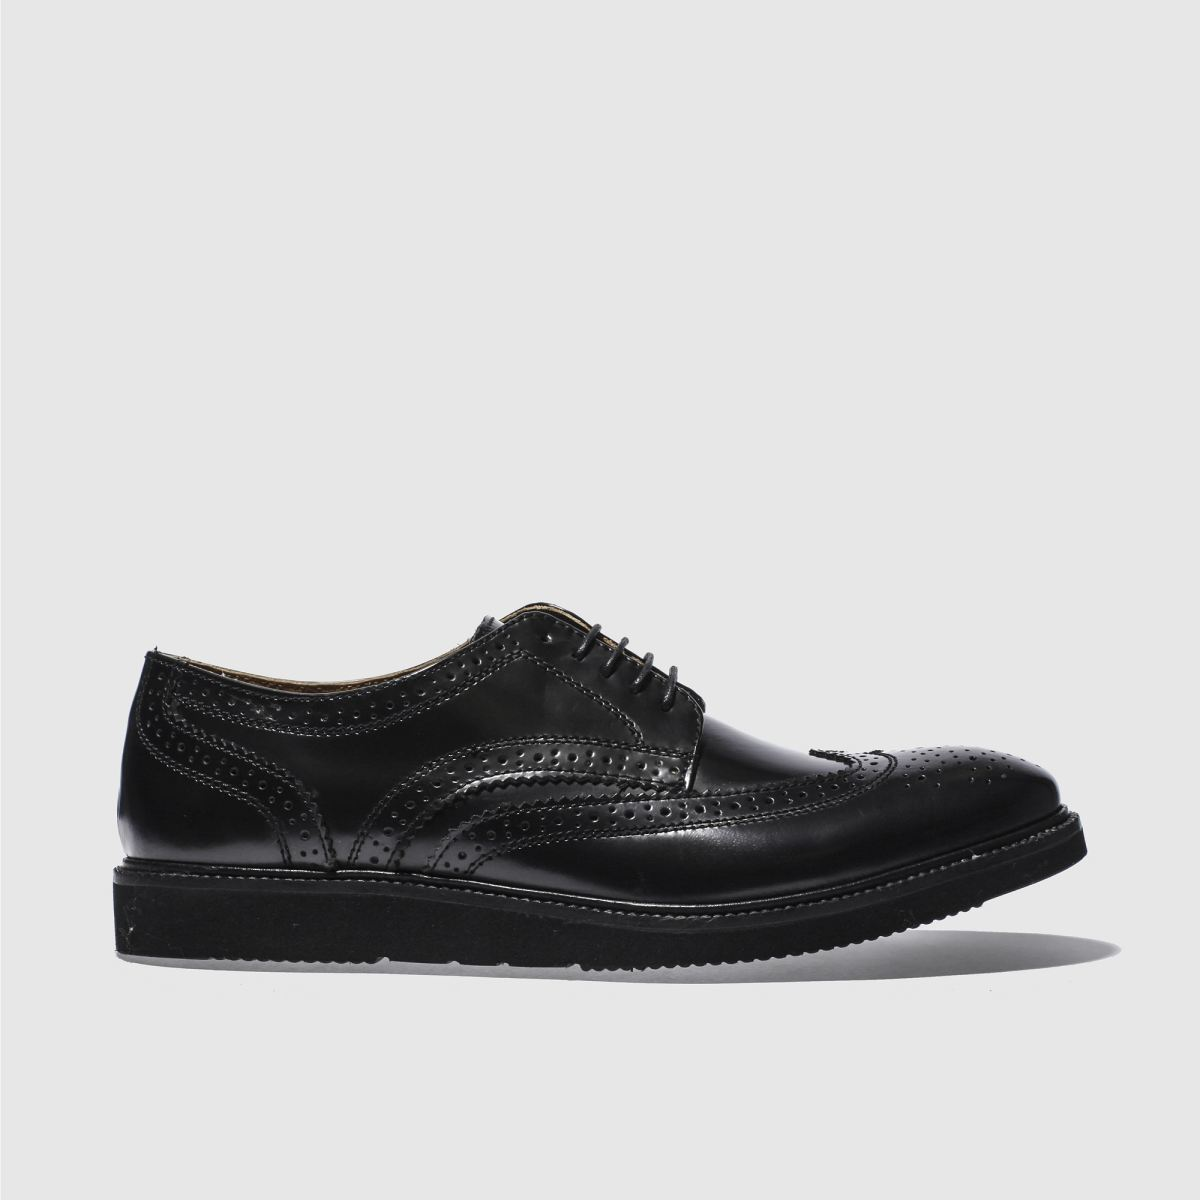 base london black orion shoes